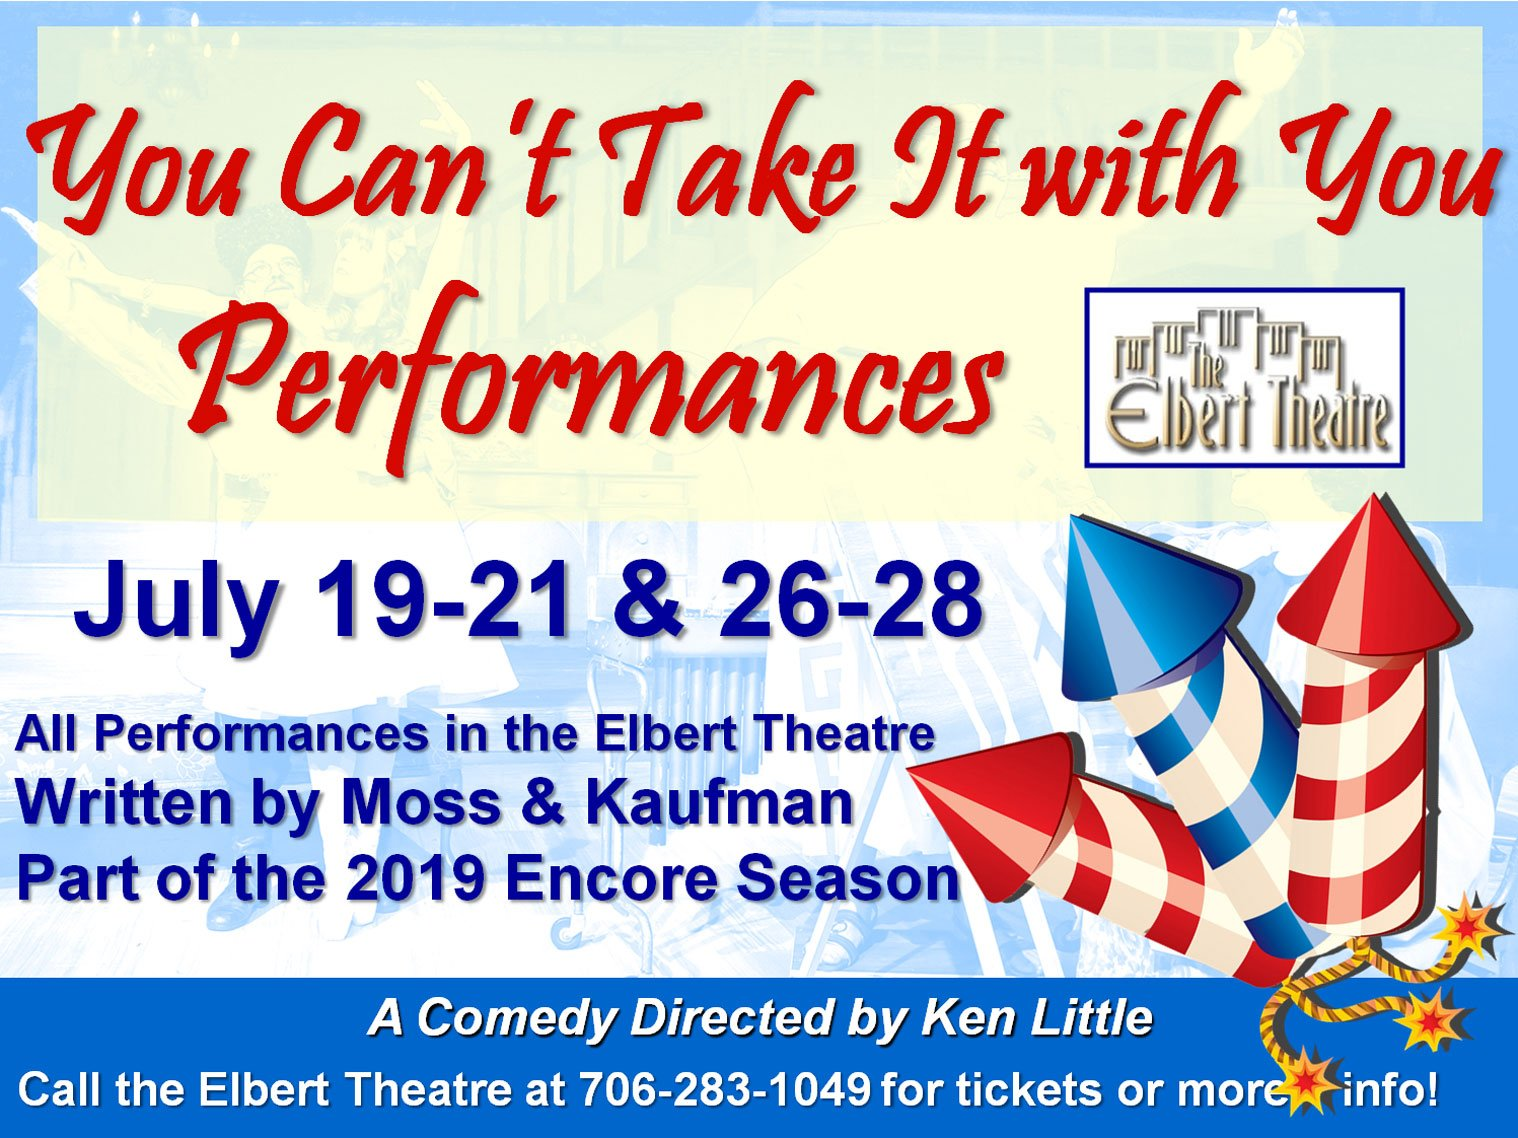 You Can't Take It With You Performances Advertisement